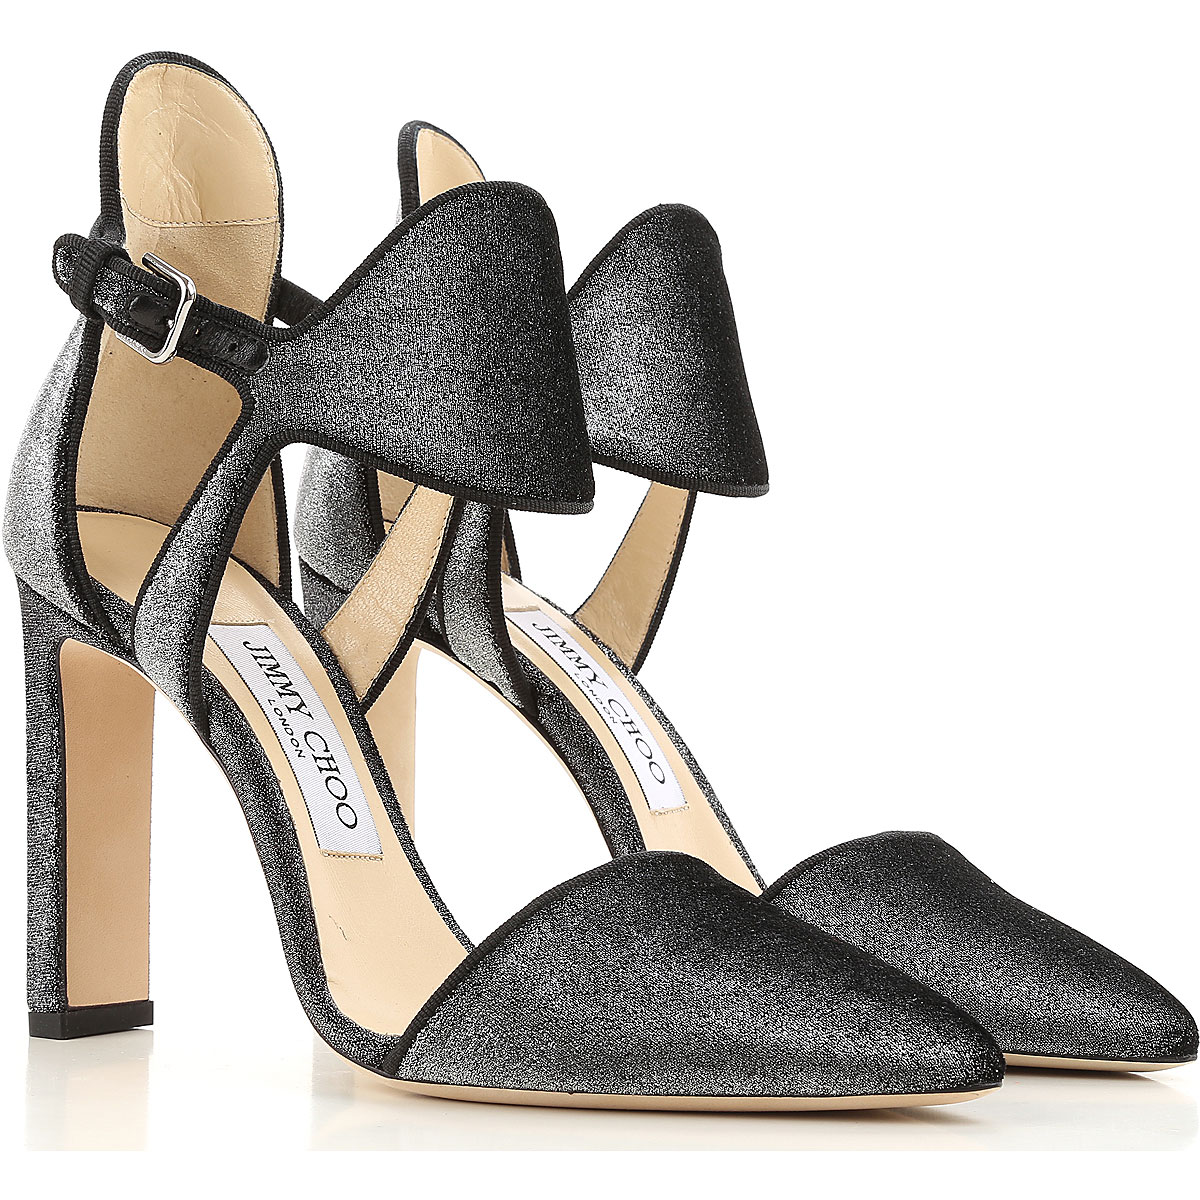 Jimmy Choo Pumps & High Heels for Women in Outlet Anthracite USA - GOOFASH